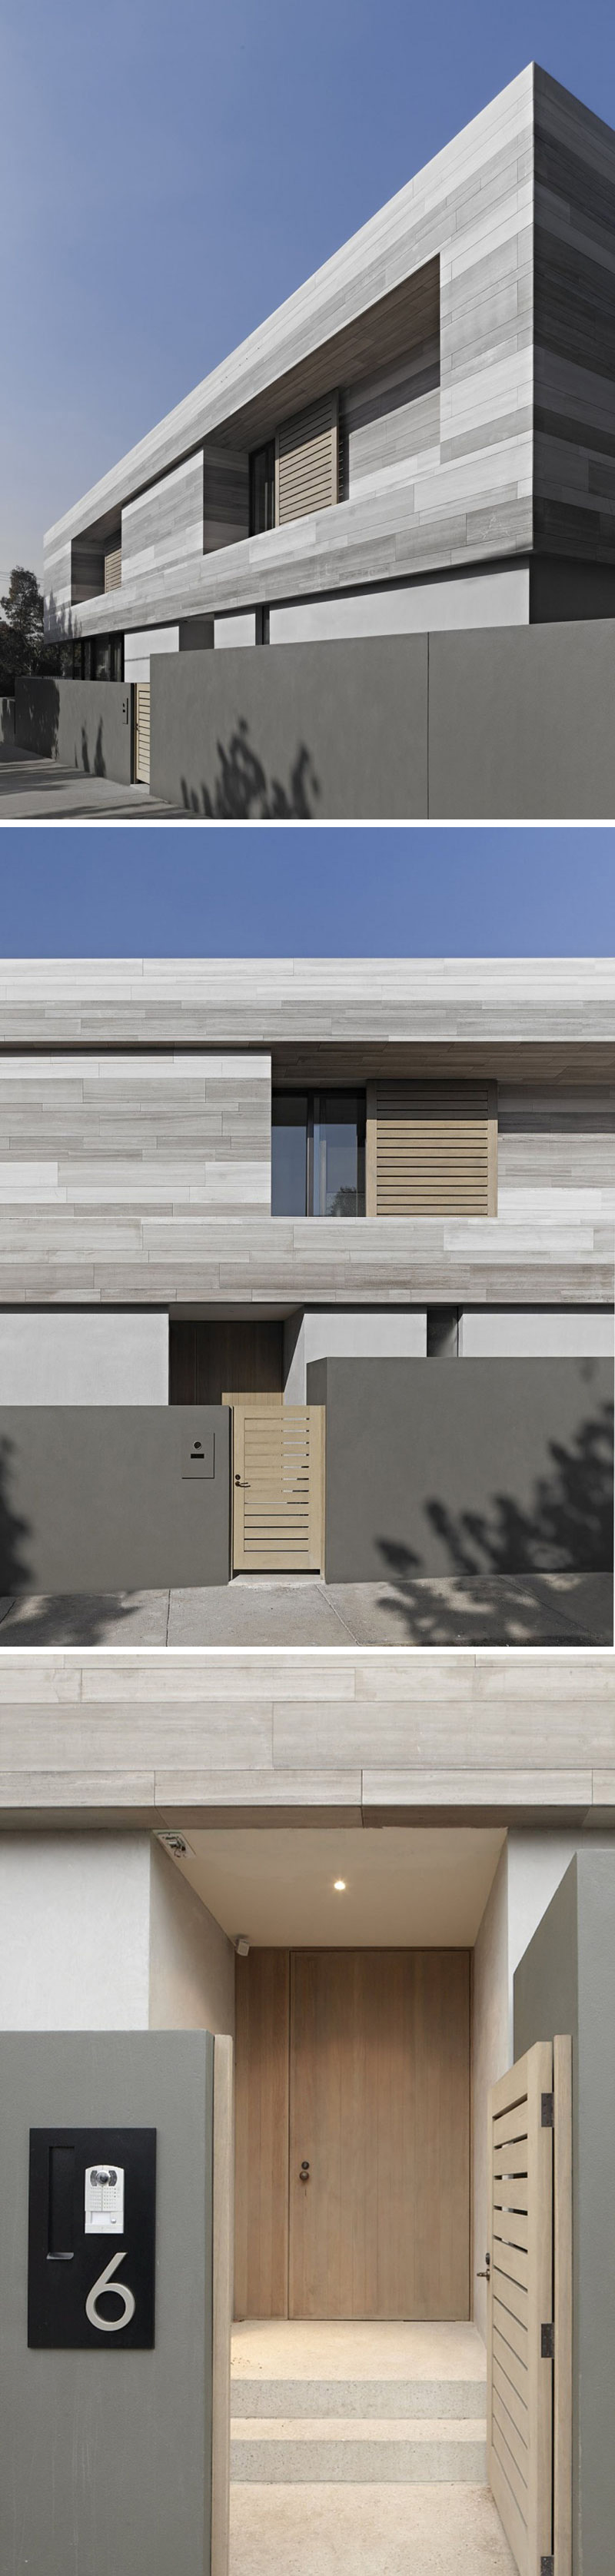 The exterior of this modern home is made from bands of travertine stone, that was collected from opposite sides of a quarry, giving it it's multiple grey tones. A light wood gate leads to the front entrance of the house.